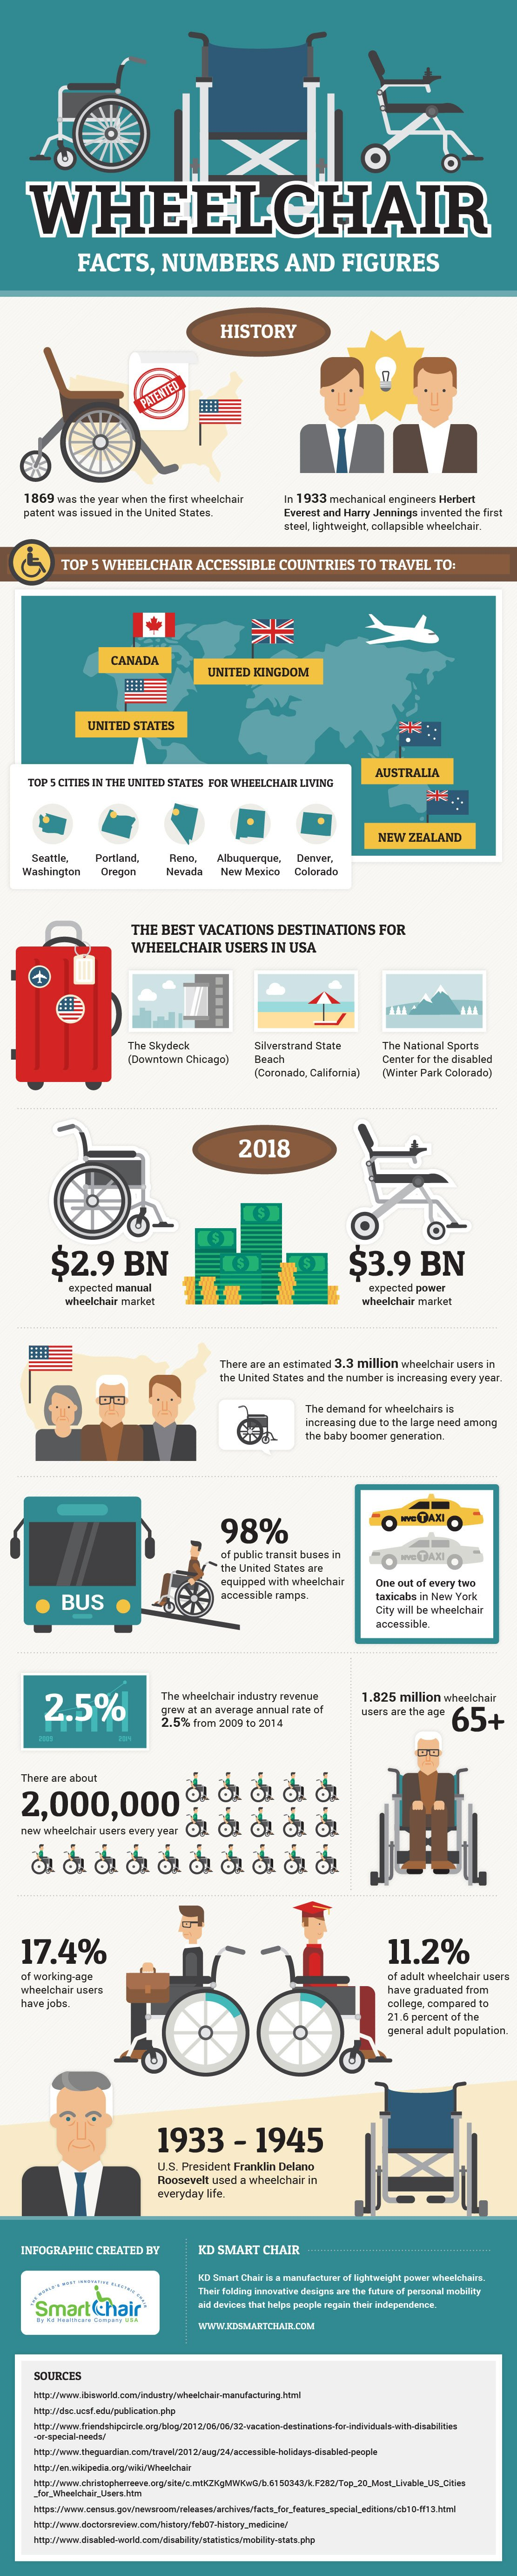 Wheelchair Facts, Numbers and Figures by KD Smart Chair